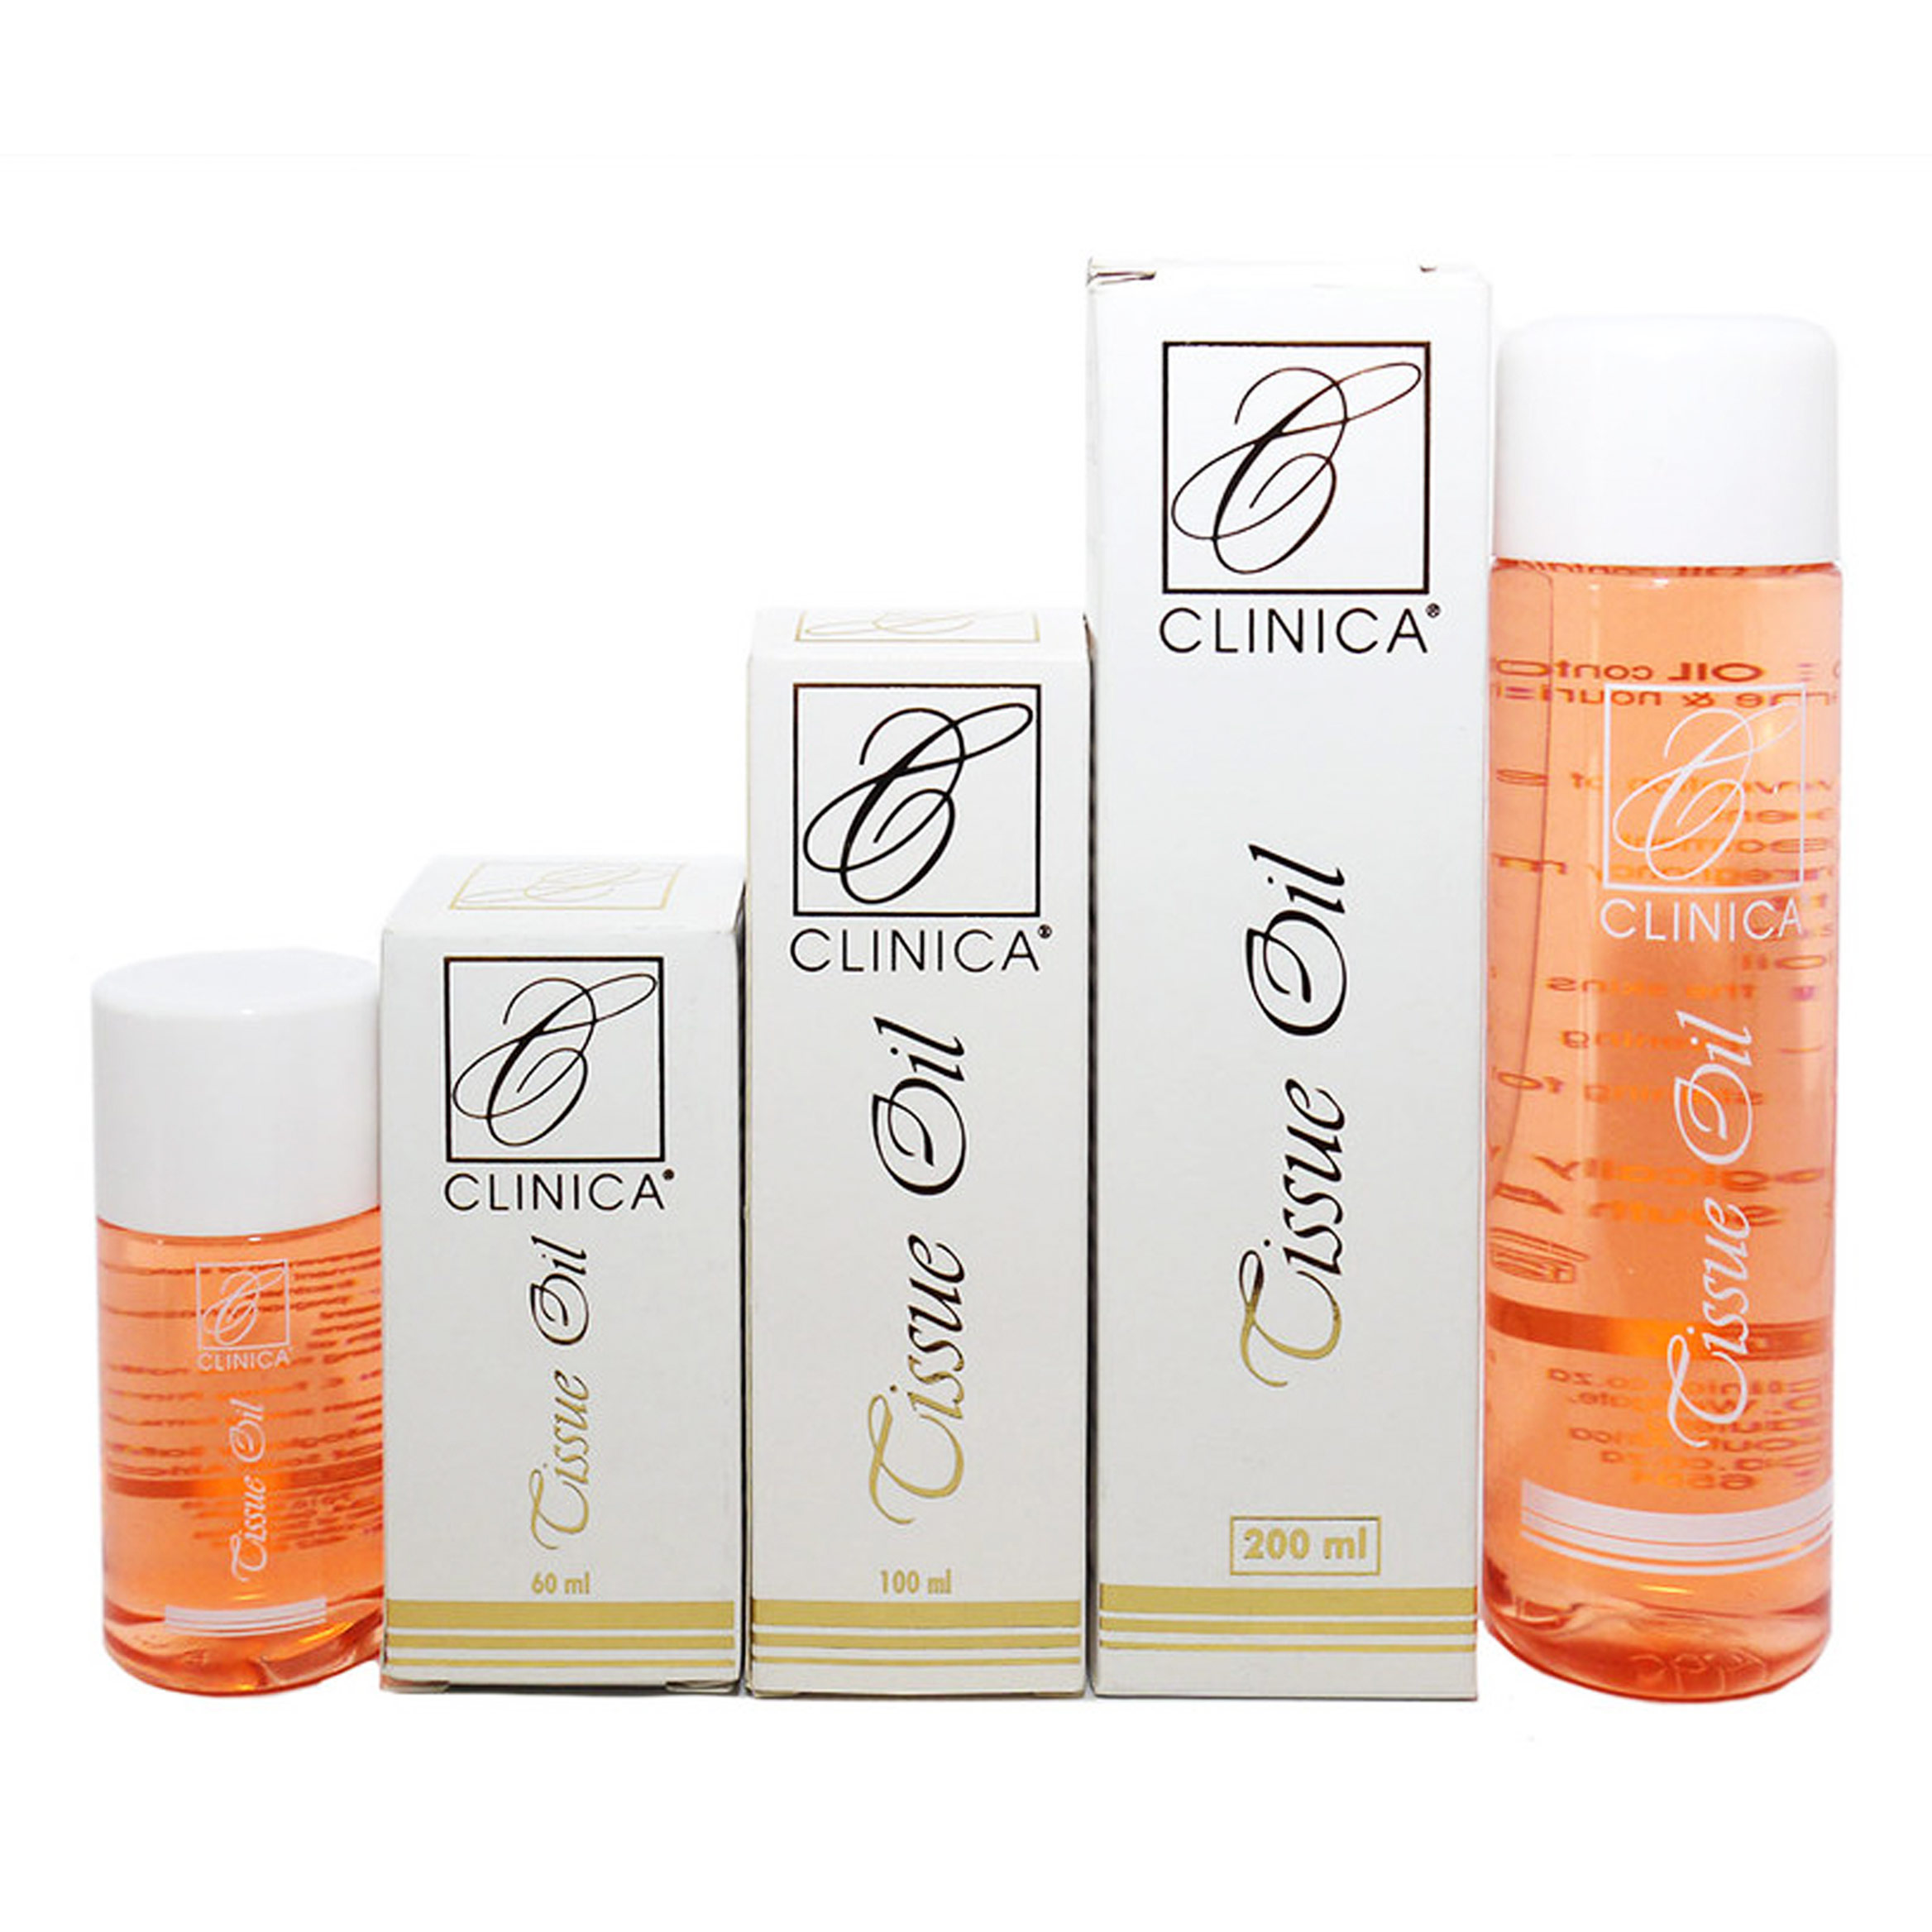 Clinica Tissue Oil